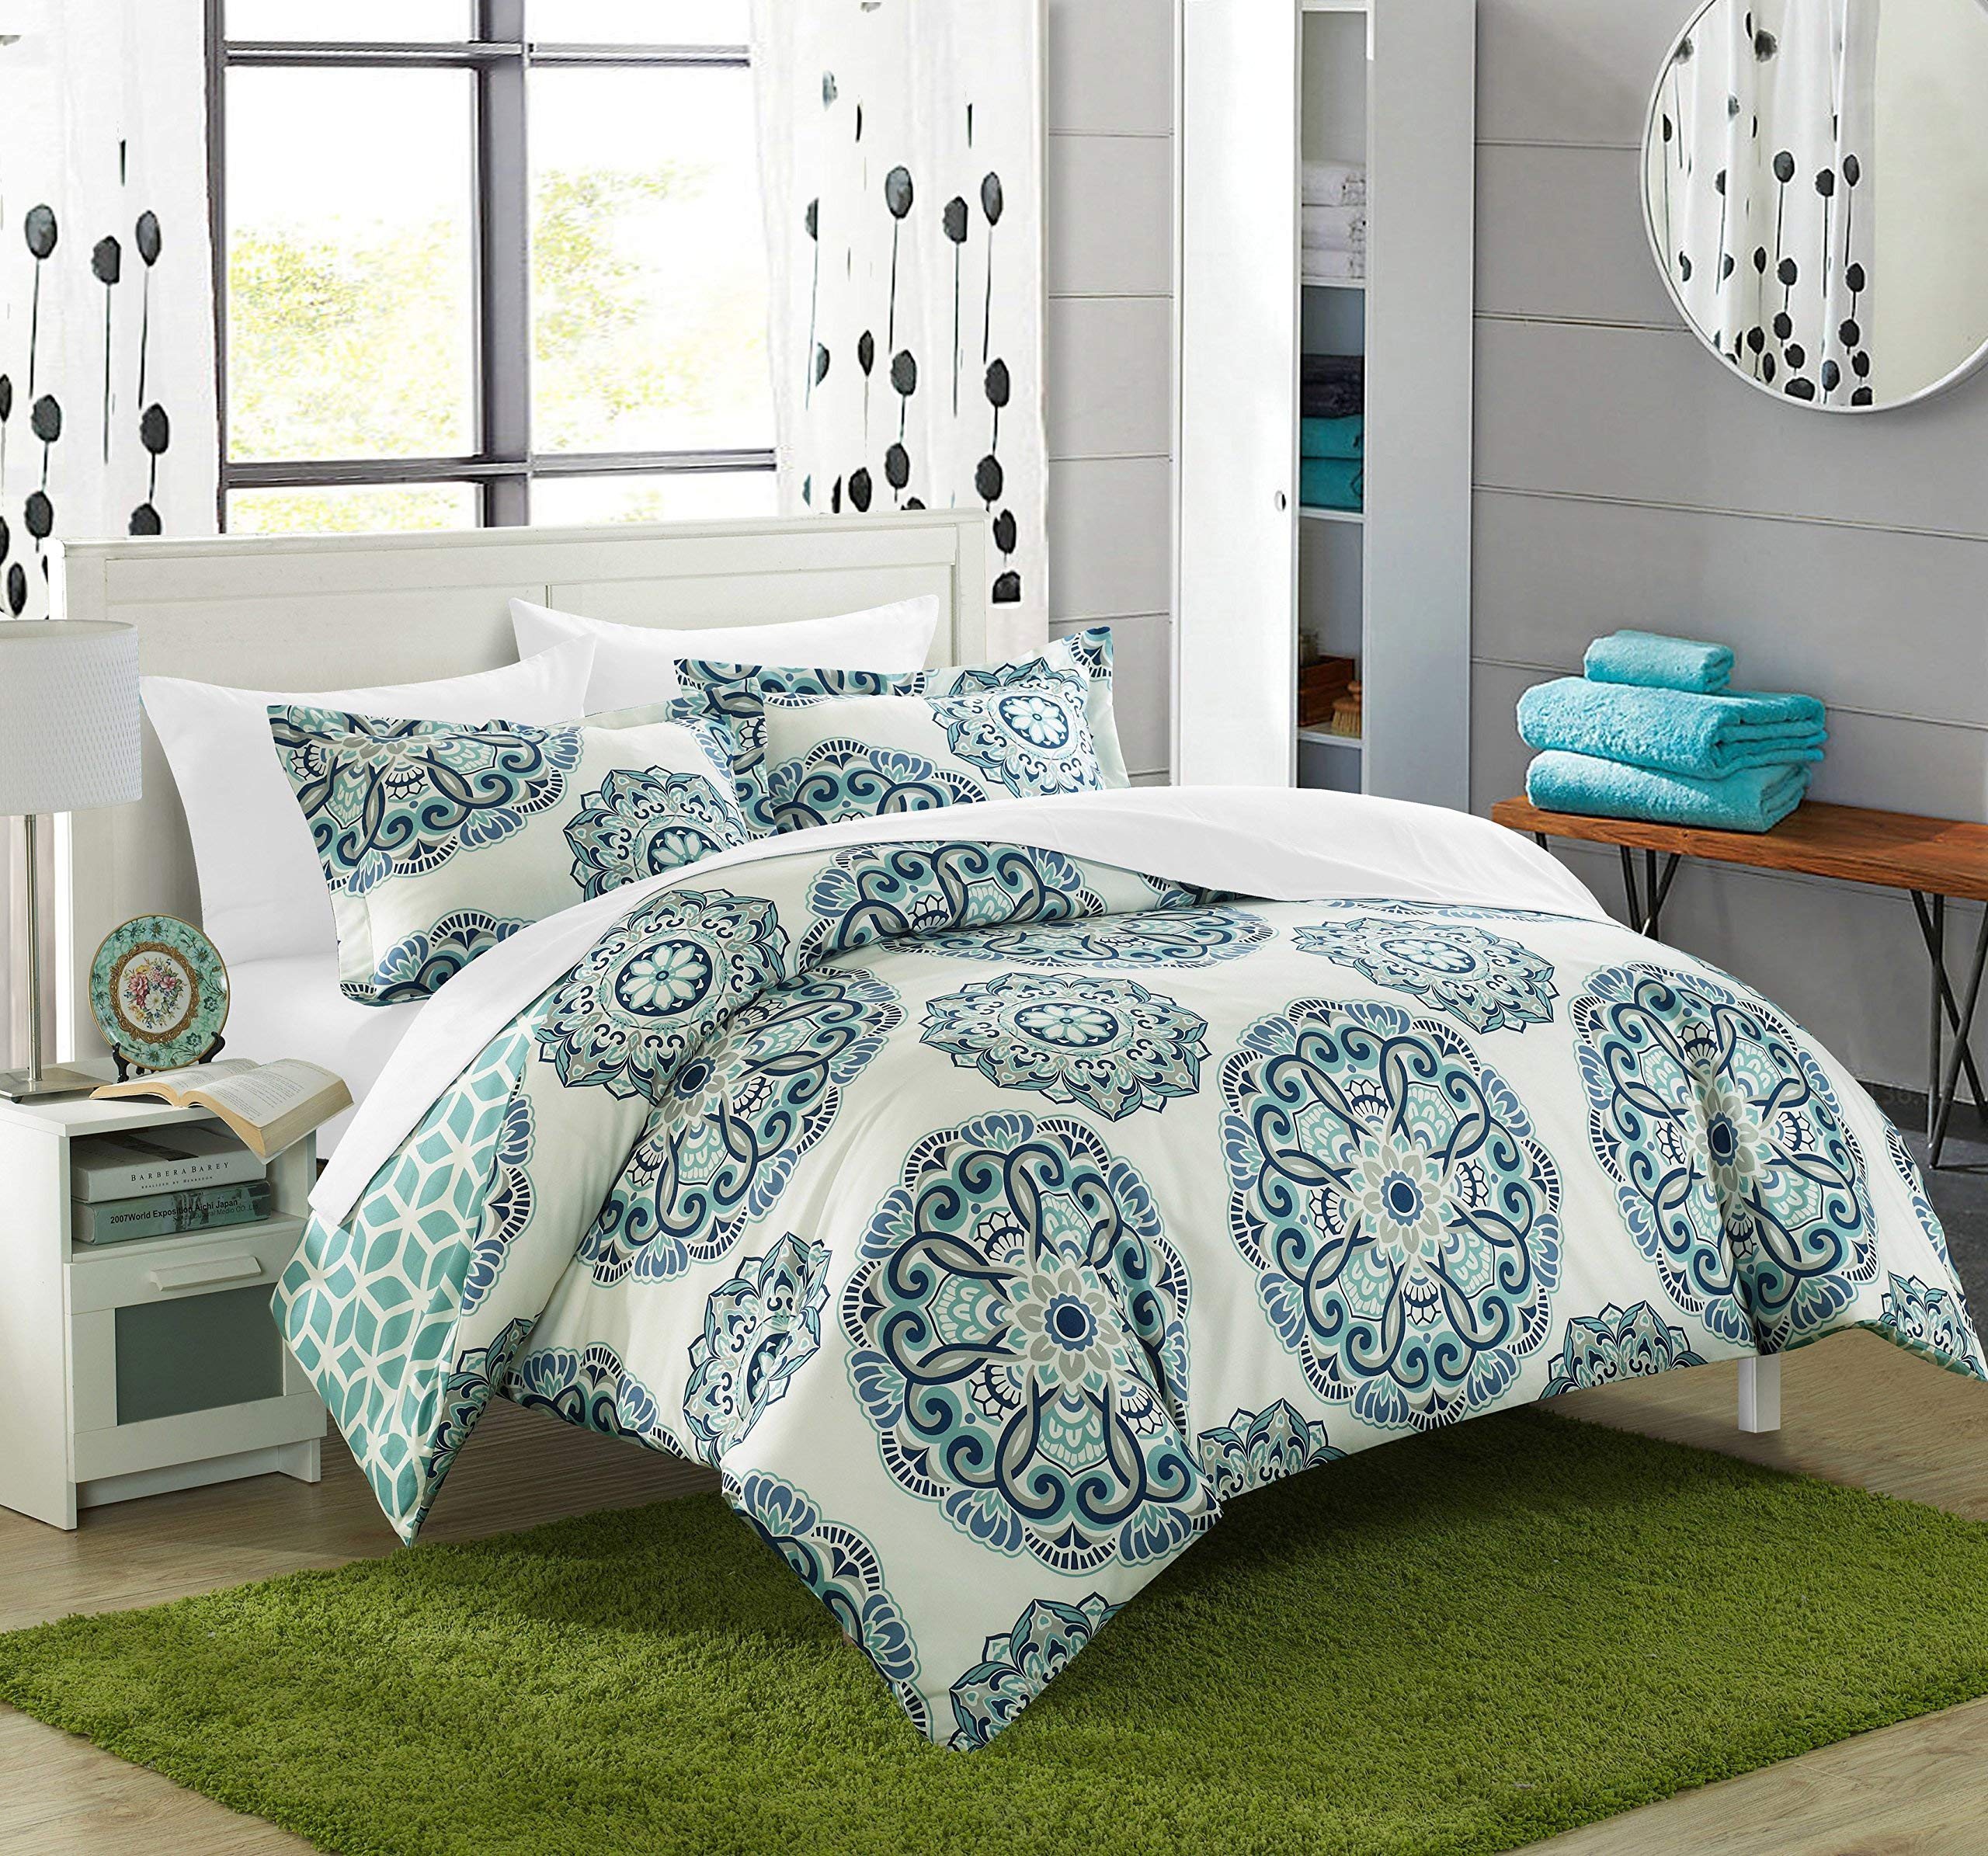 Chic Home Ibiza 3 Piece Duvet Cover Set Super Soft Reversible Microfiber Large Printed Medallion Design with Geometric Patterned Backing Zipper Closure Bedding with Decorative Shams, King Green